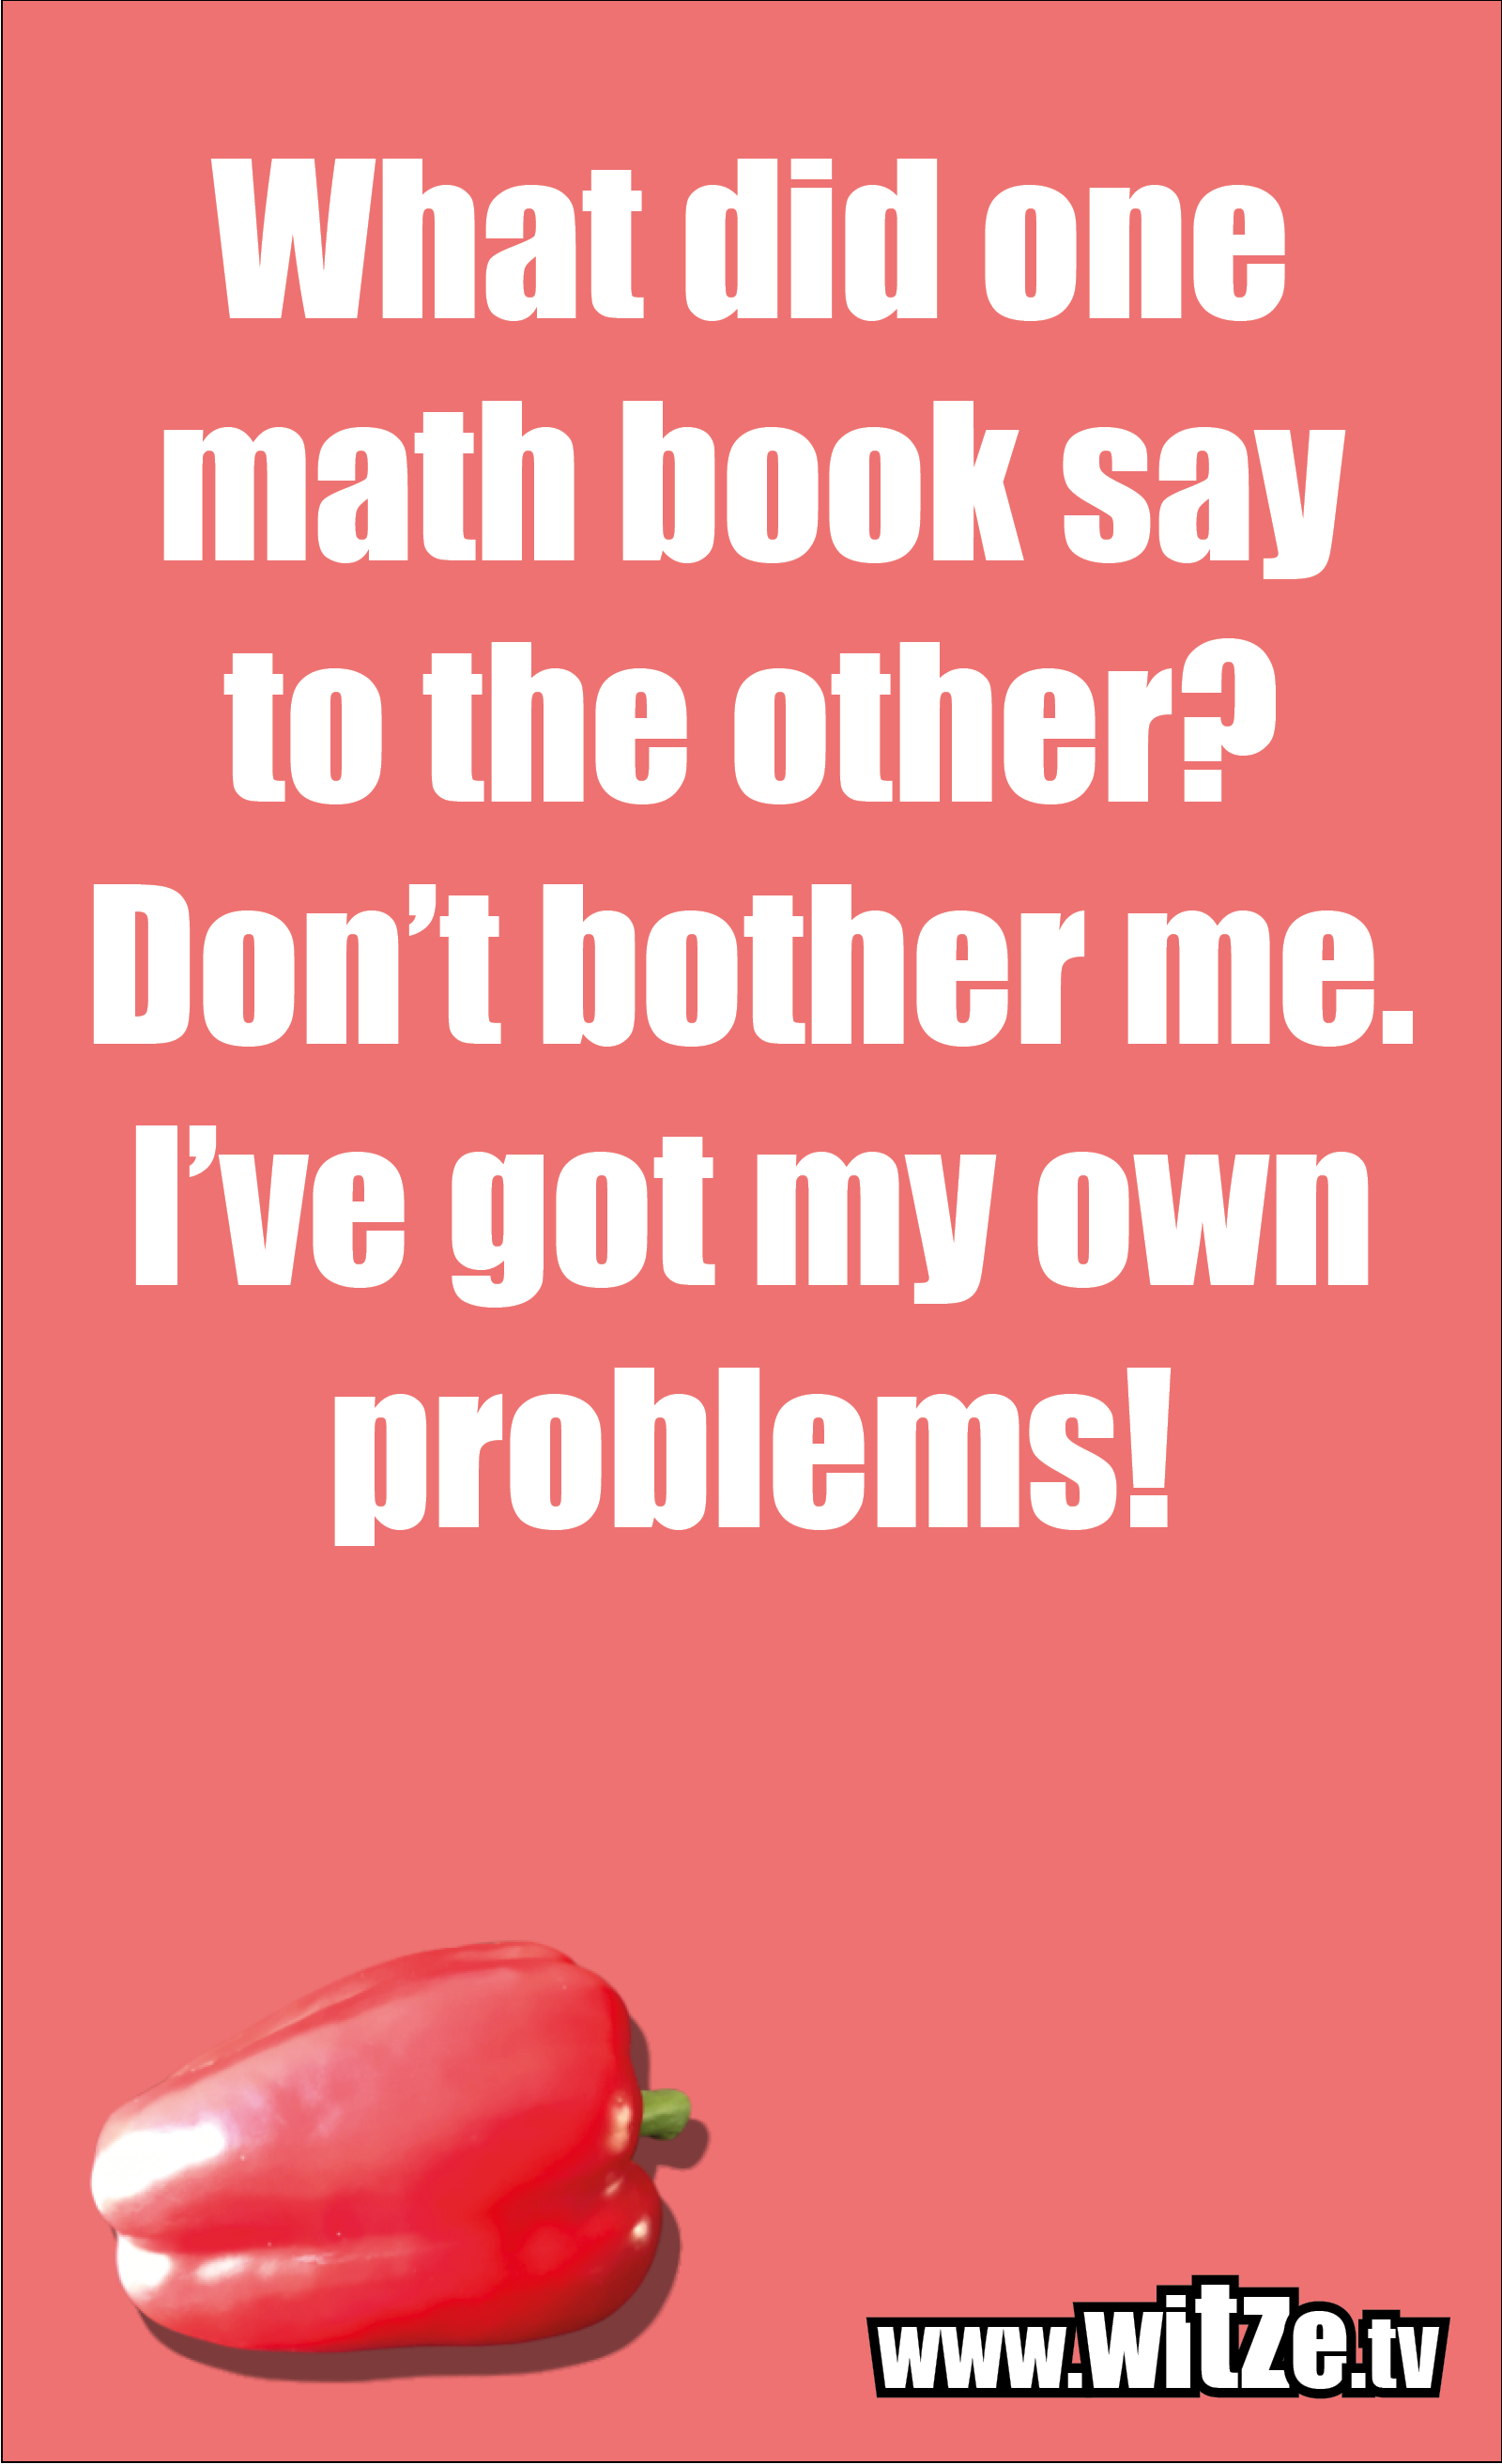 Math joke… What did one math book say to the other? Don't bother me. I've got my own problems!